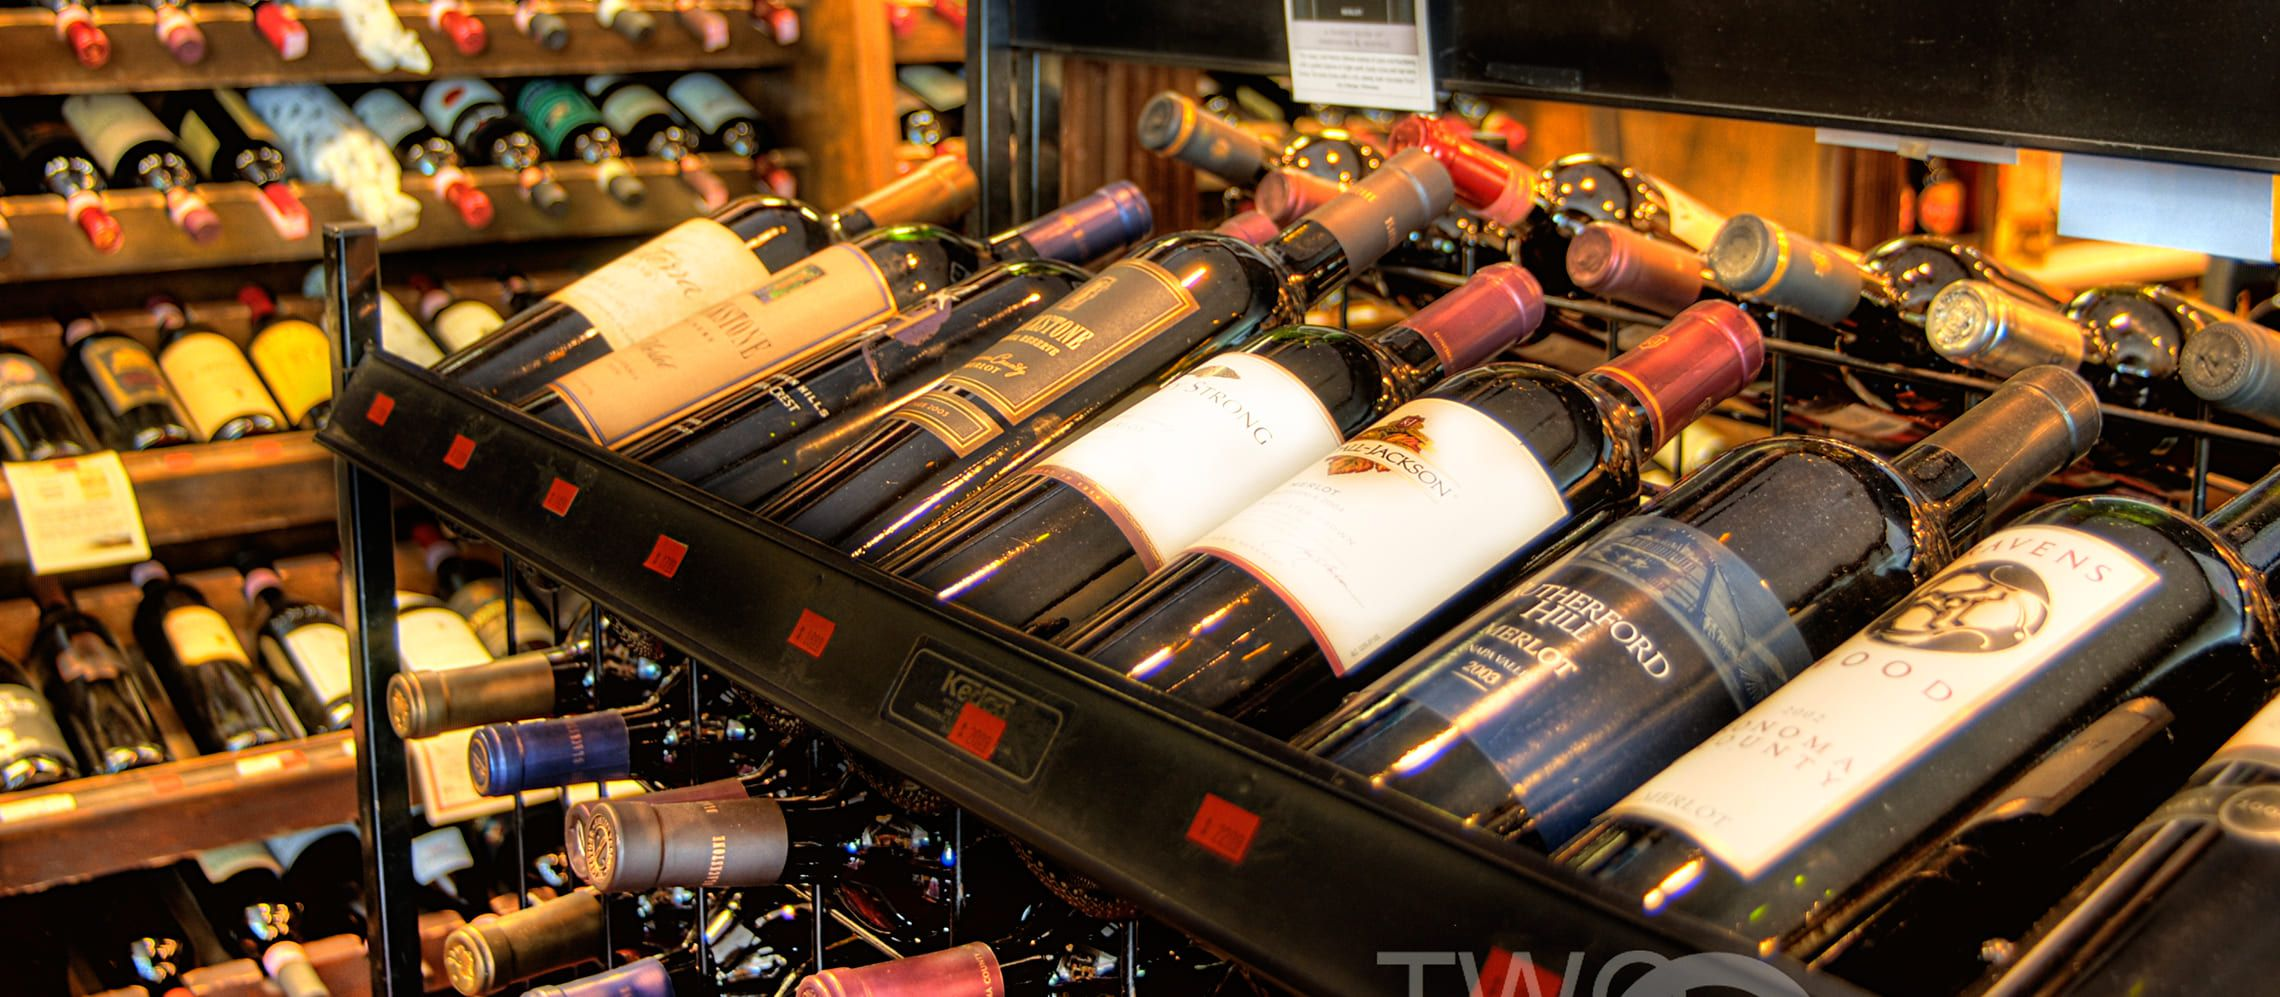 Photo for: 10 Leading Wine Retailers in Europe